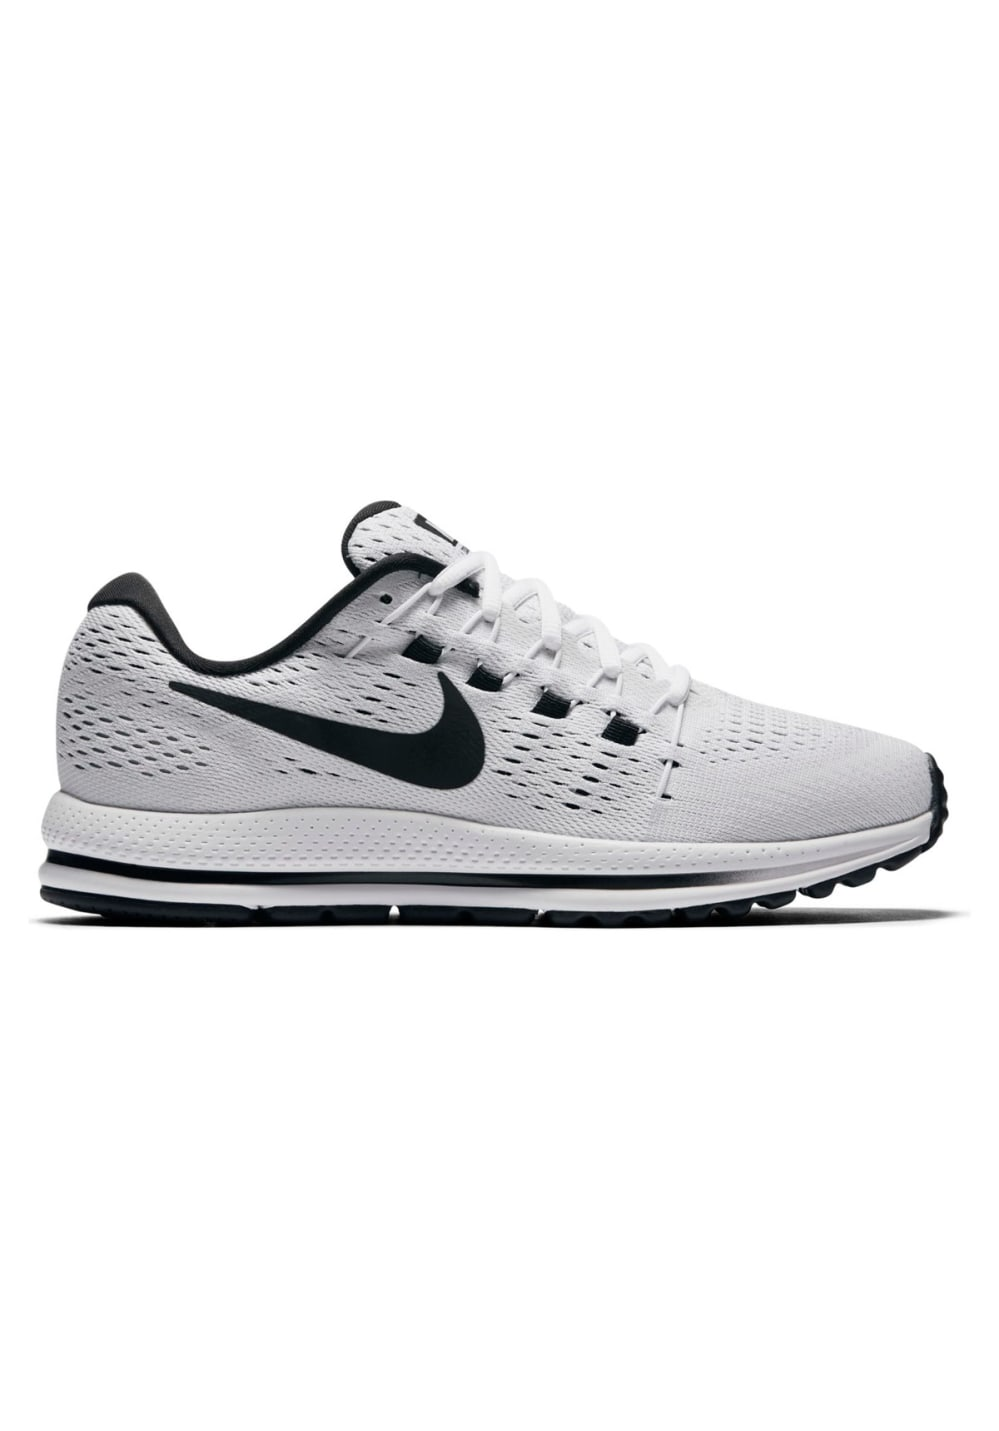 huge selection of 87290 34d71 Nike Air Zoom Vomero 12 - Running shoes for Women - Grey   21RUN